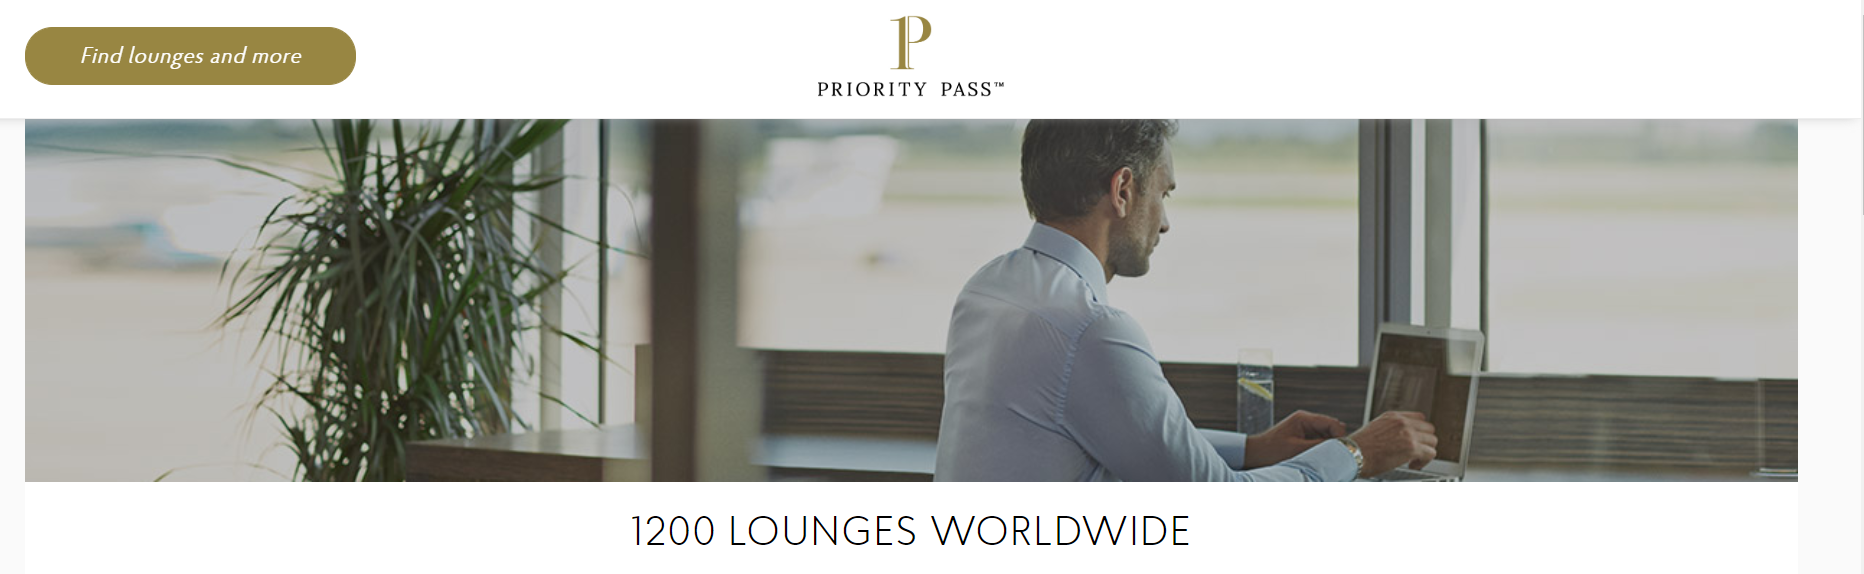 Priority Pass Coupon Codes- Airport Lounge Program